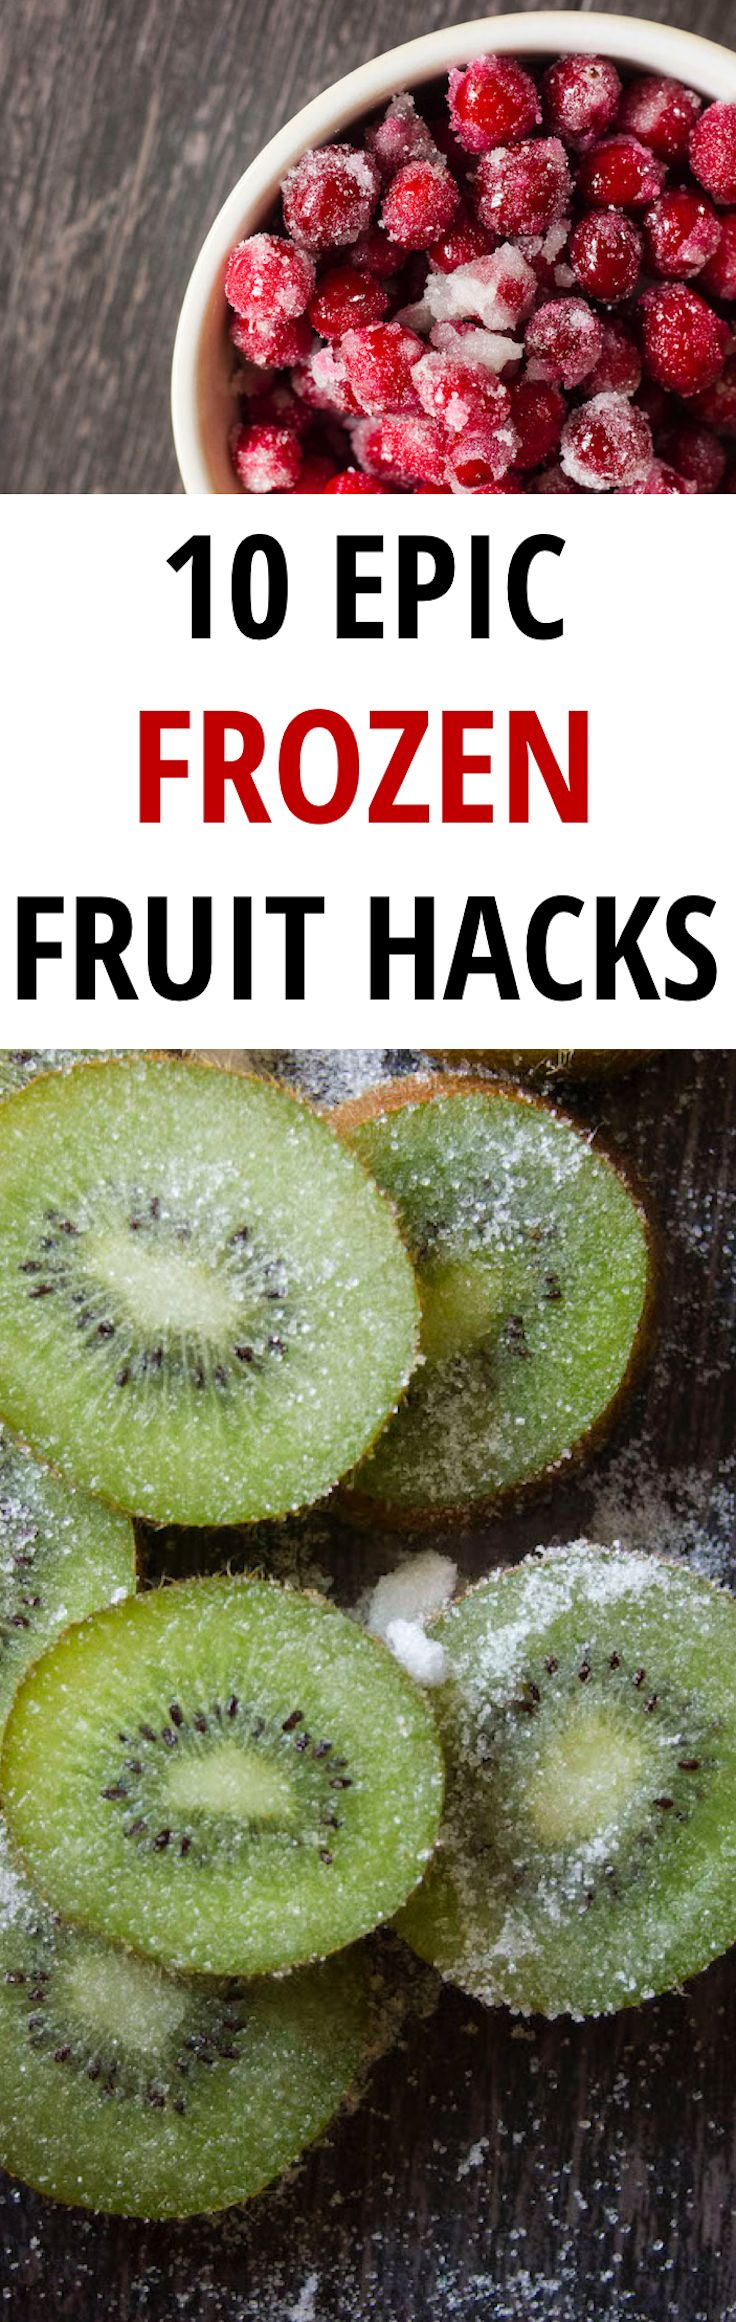 These frozen fruit hacks that will help cool you off while satisfying your sweet tooth and leaving you with extra cash in your account.